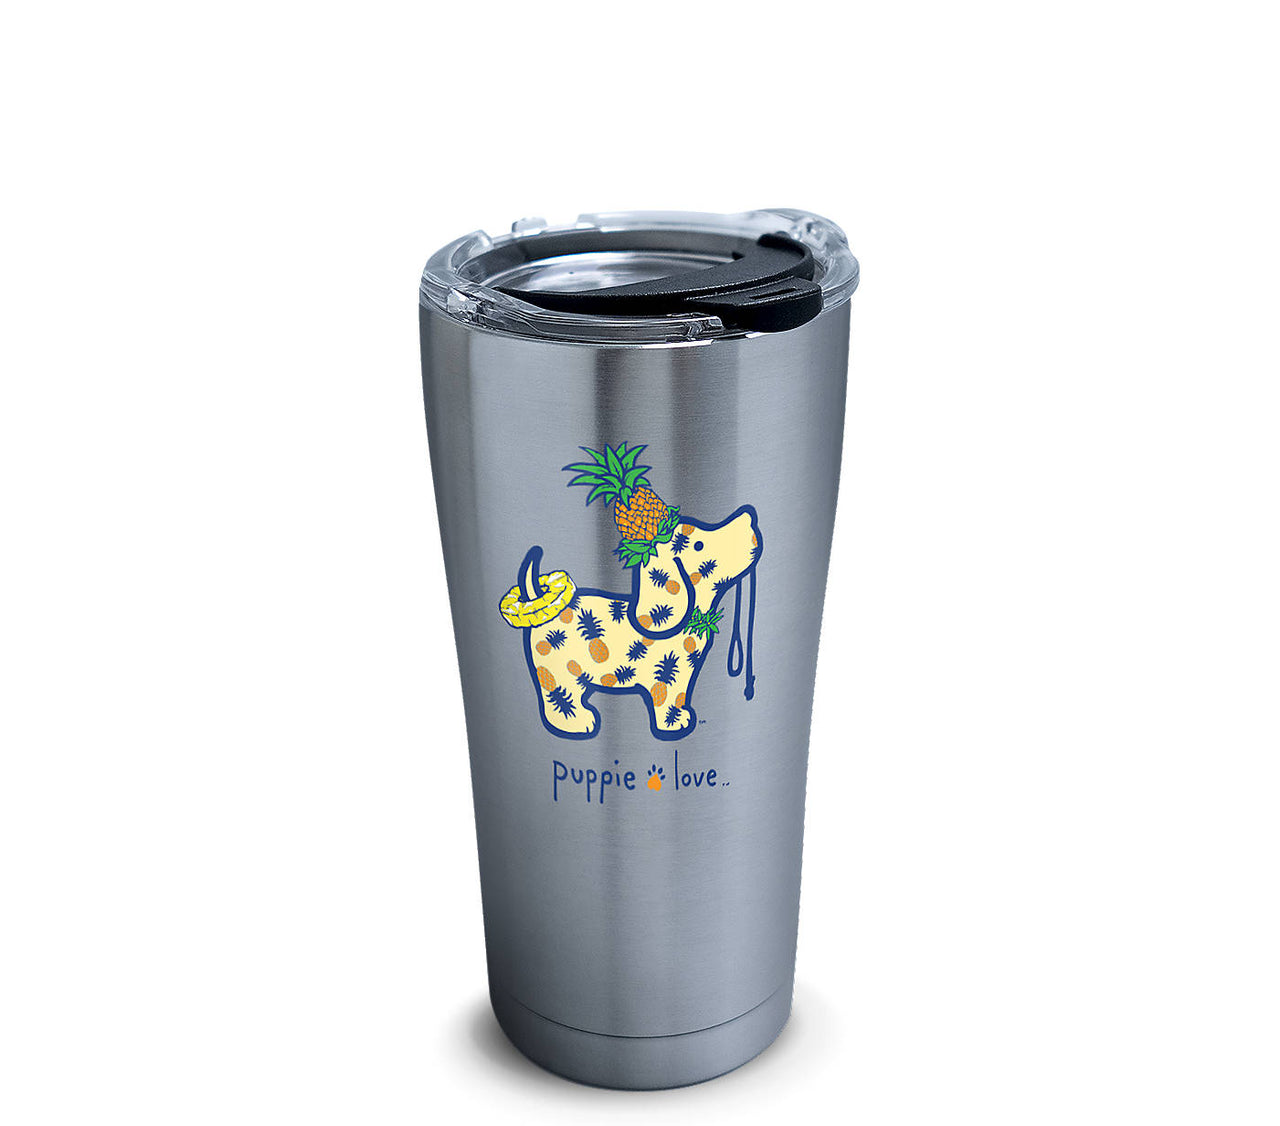 PINEAPPLE PUP 20 OZ STAINLESS - Puppie Love